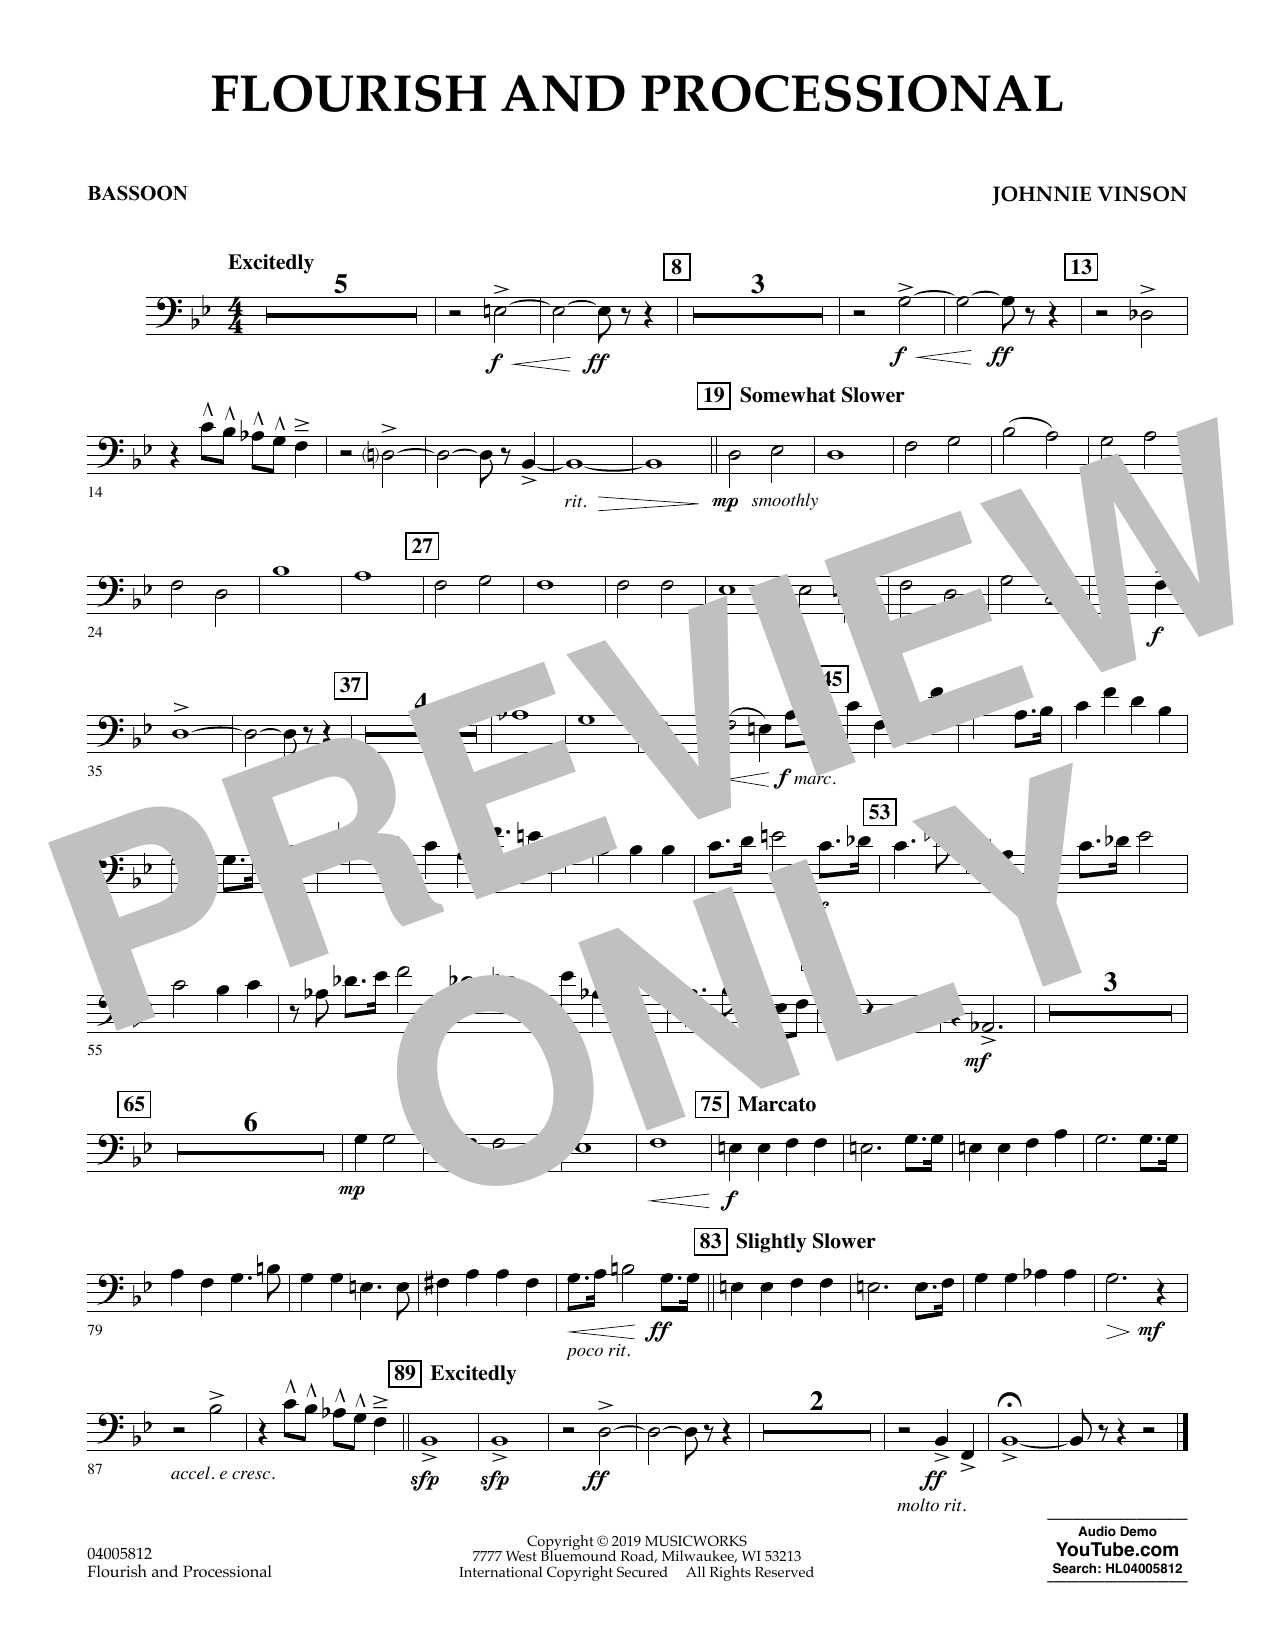 Johnnie Vinson Flourish and Processional - Bassoon sheet music preview music notes and score for Concert Band including 1 page(s)